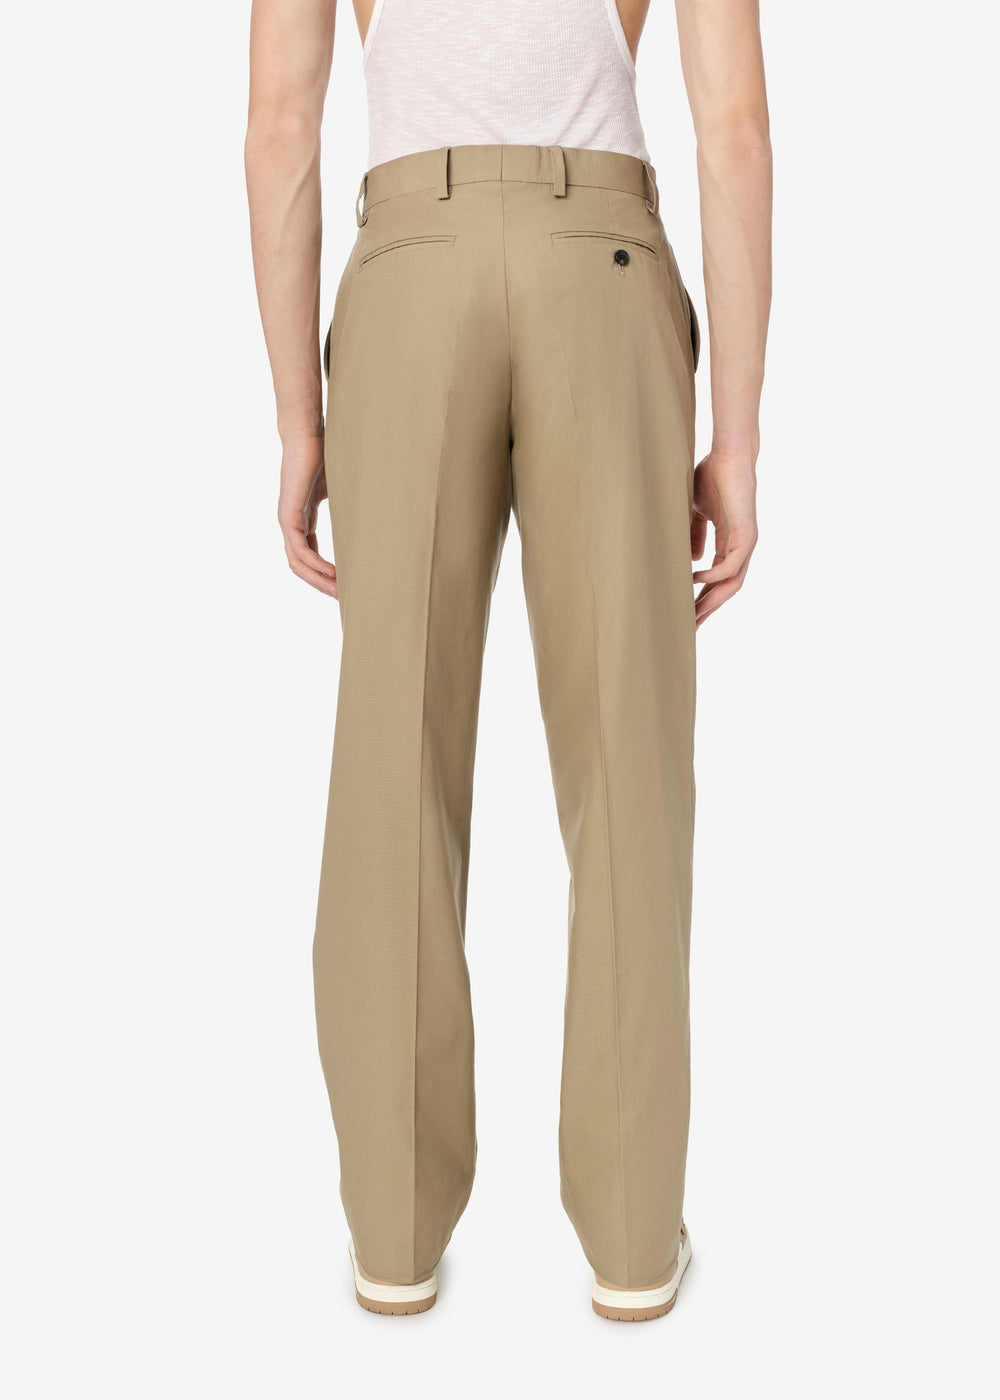 SINGLE PLEAT RELAXED TROUSER - Brown